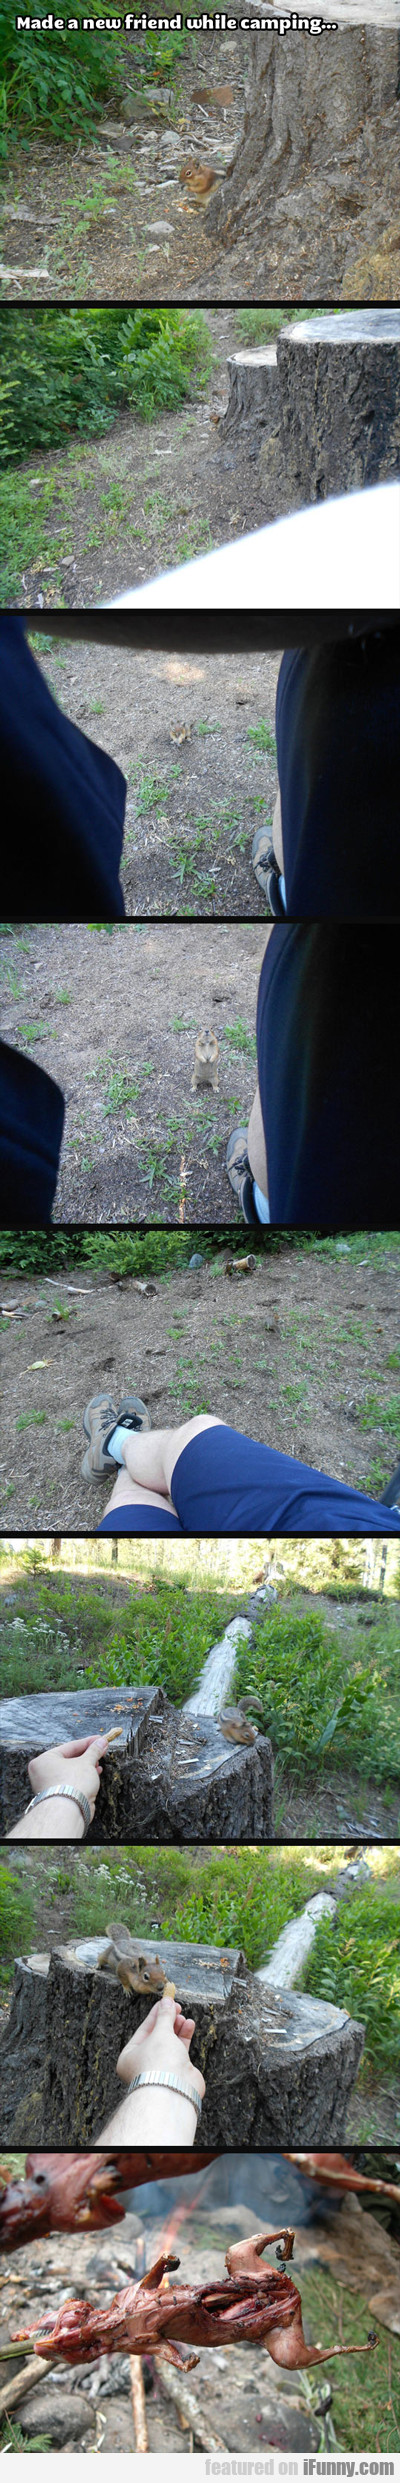 Made A New Friend While Camping...